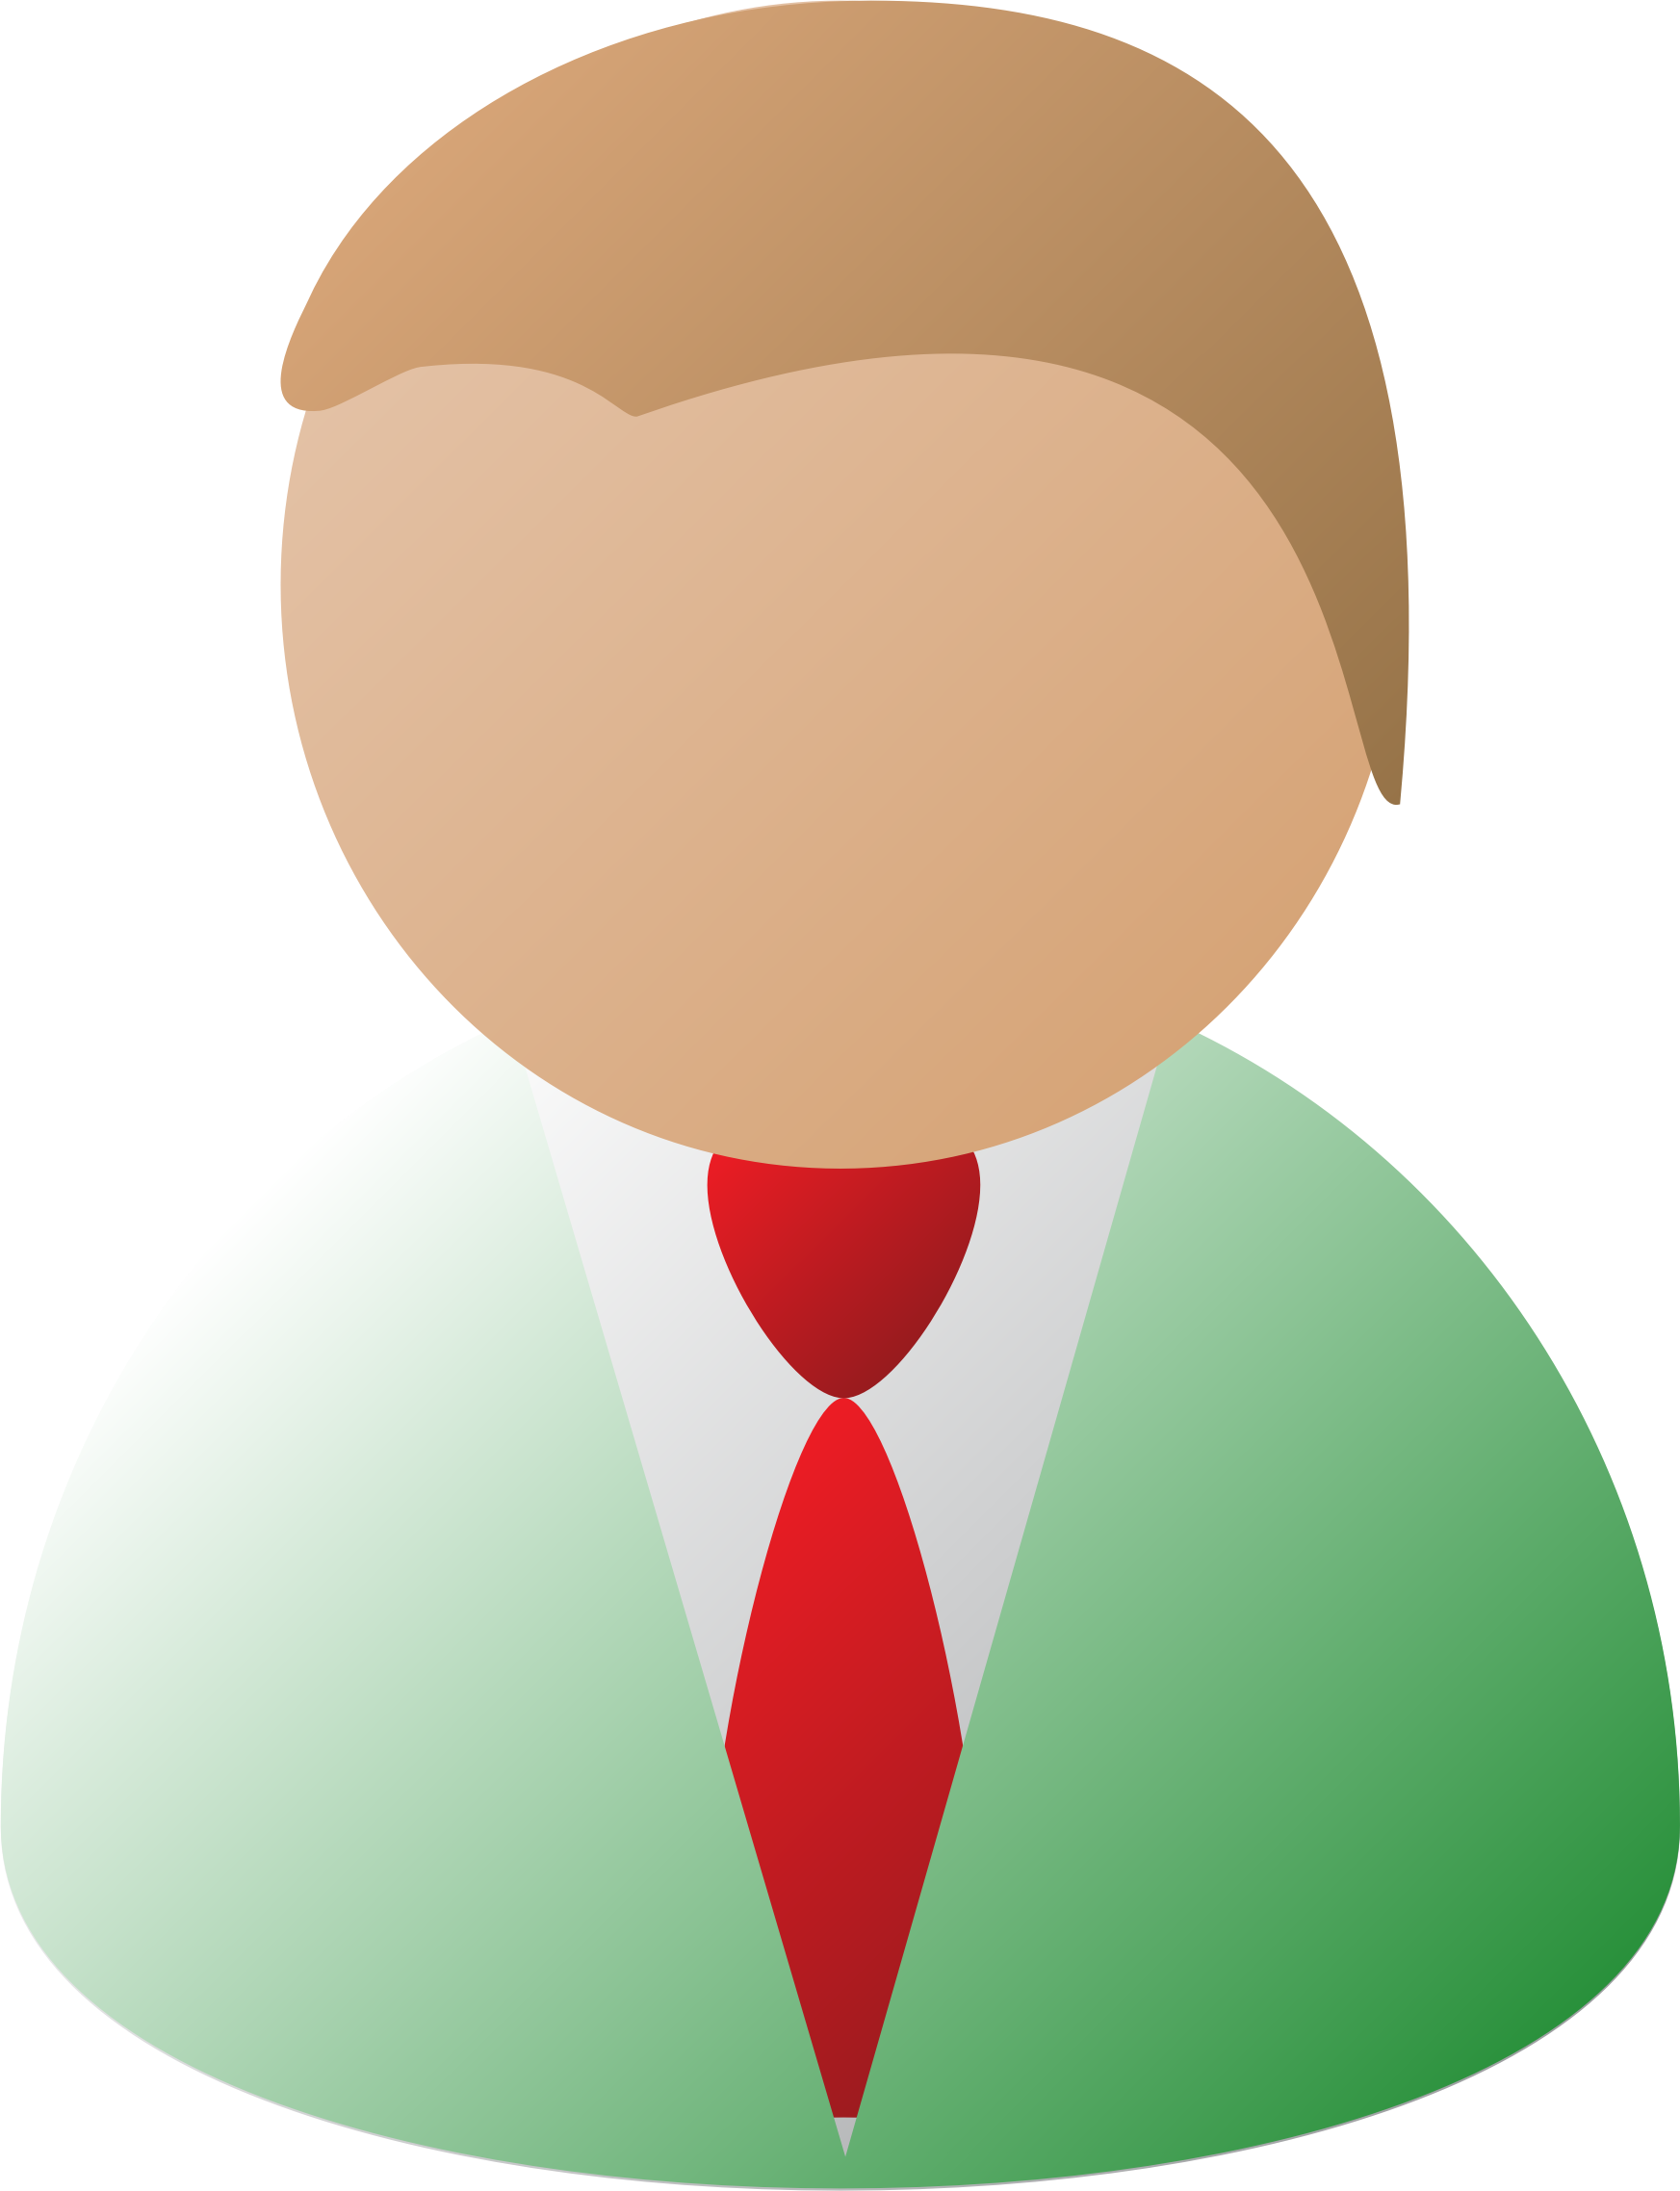 Business clipart business person #10